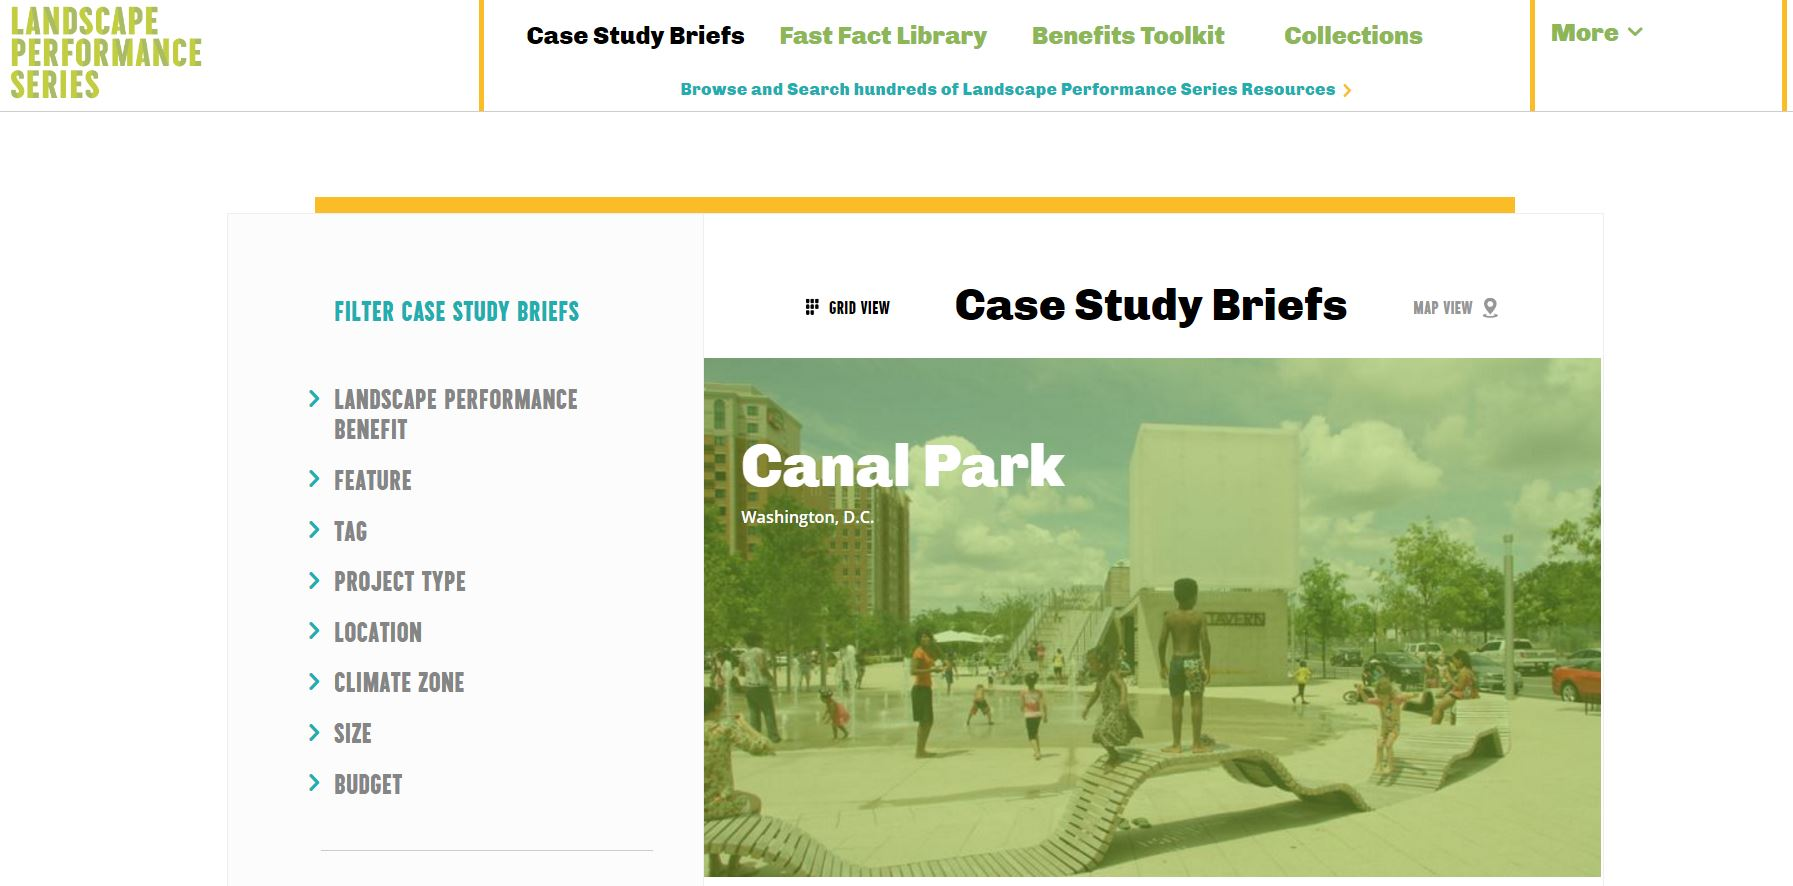 Case Study Briefs